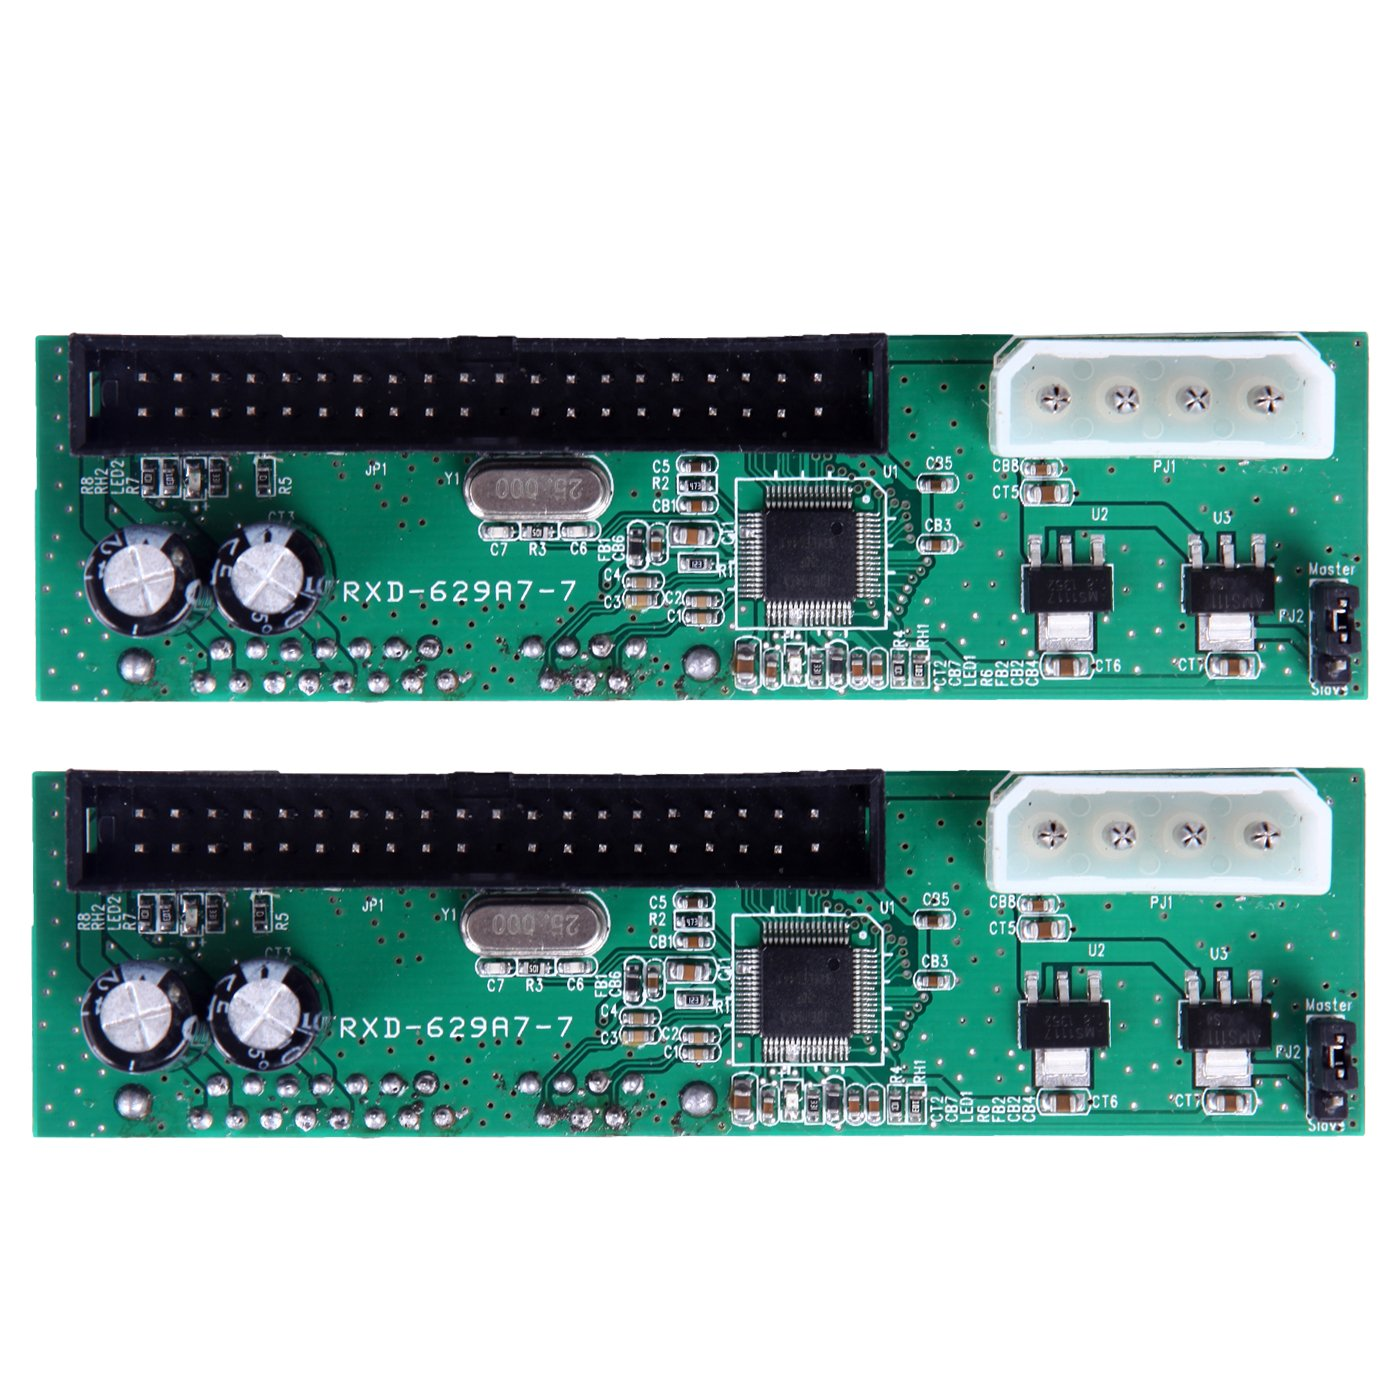 HDE 2 Pack IDE/EIDE/PATA Computer to SATA Hard Drive Interface Adapter PC Mac